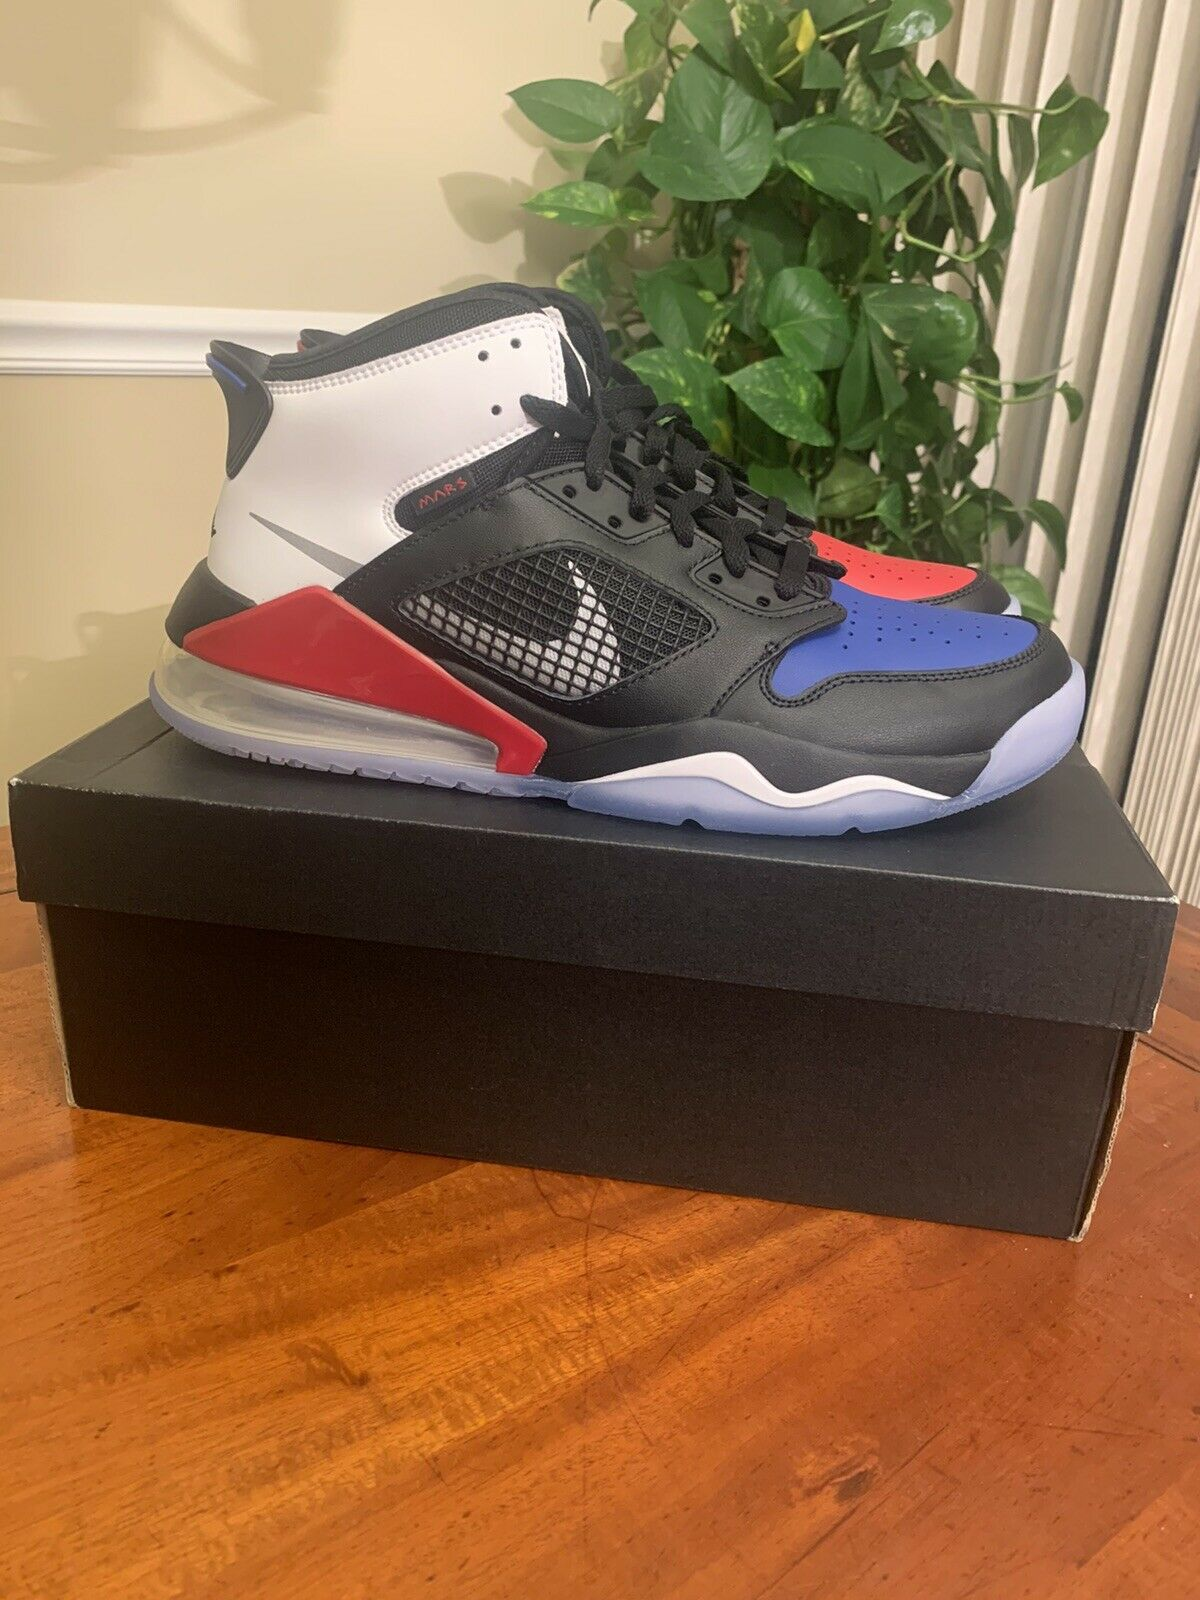 """NEW DS Nike Air Jordan Mars 270 """"Top 3"""" Size 10.5 - Black/Reflect Silver/Gym Red"""